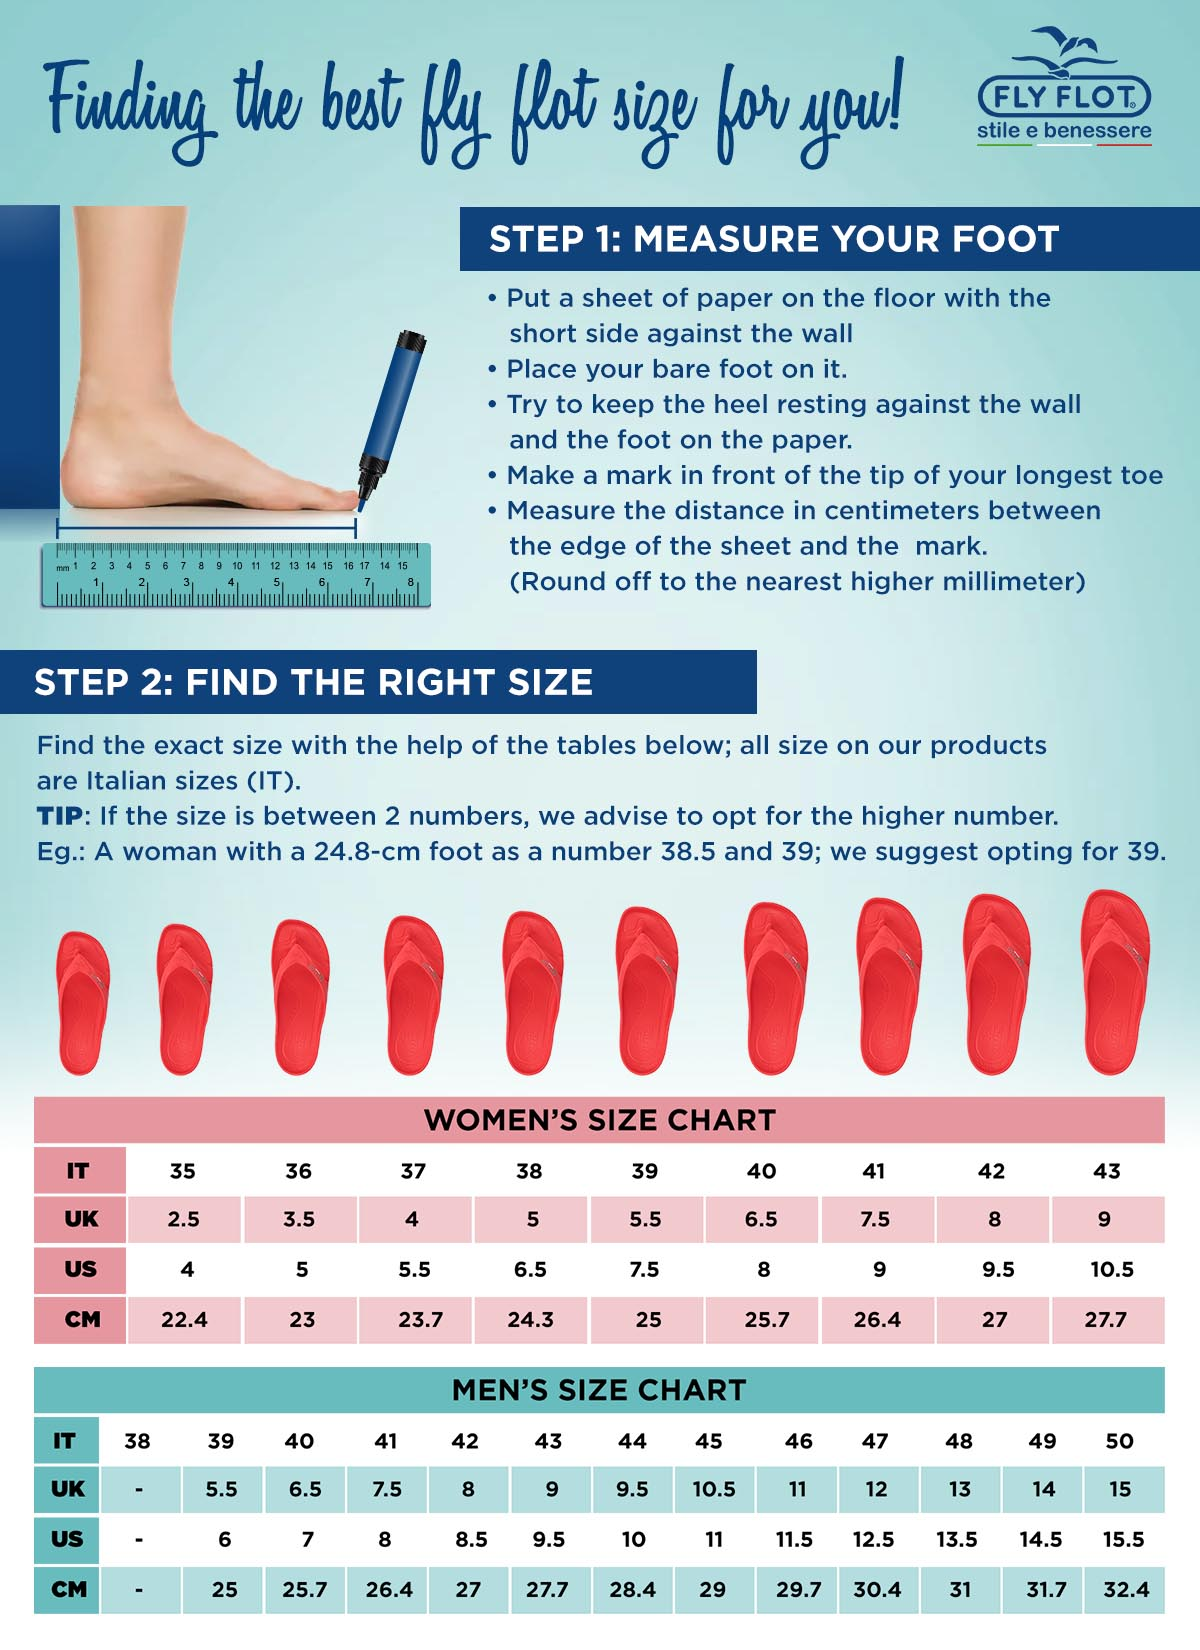 shoe size for you - Fly Flot Singapore